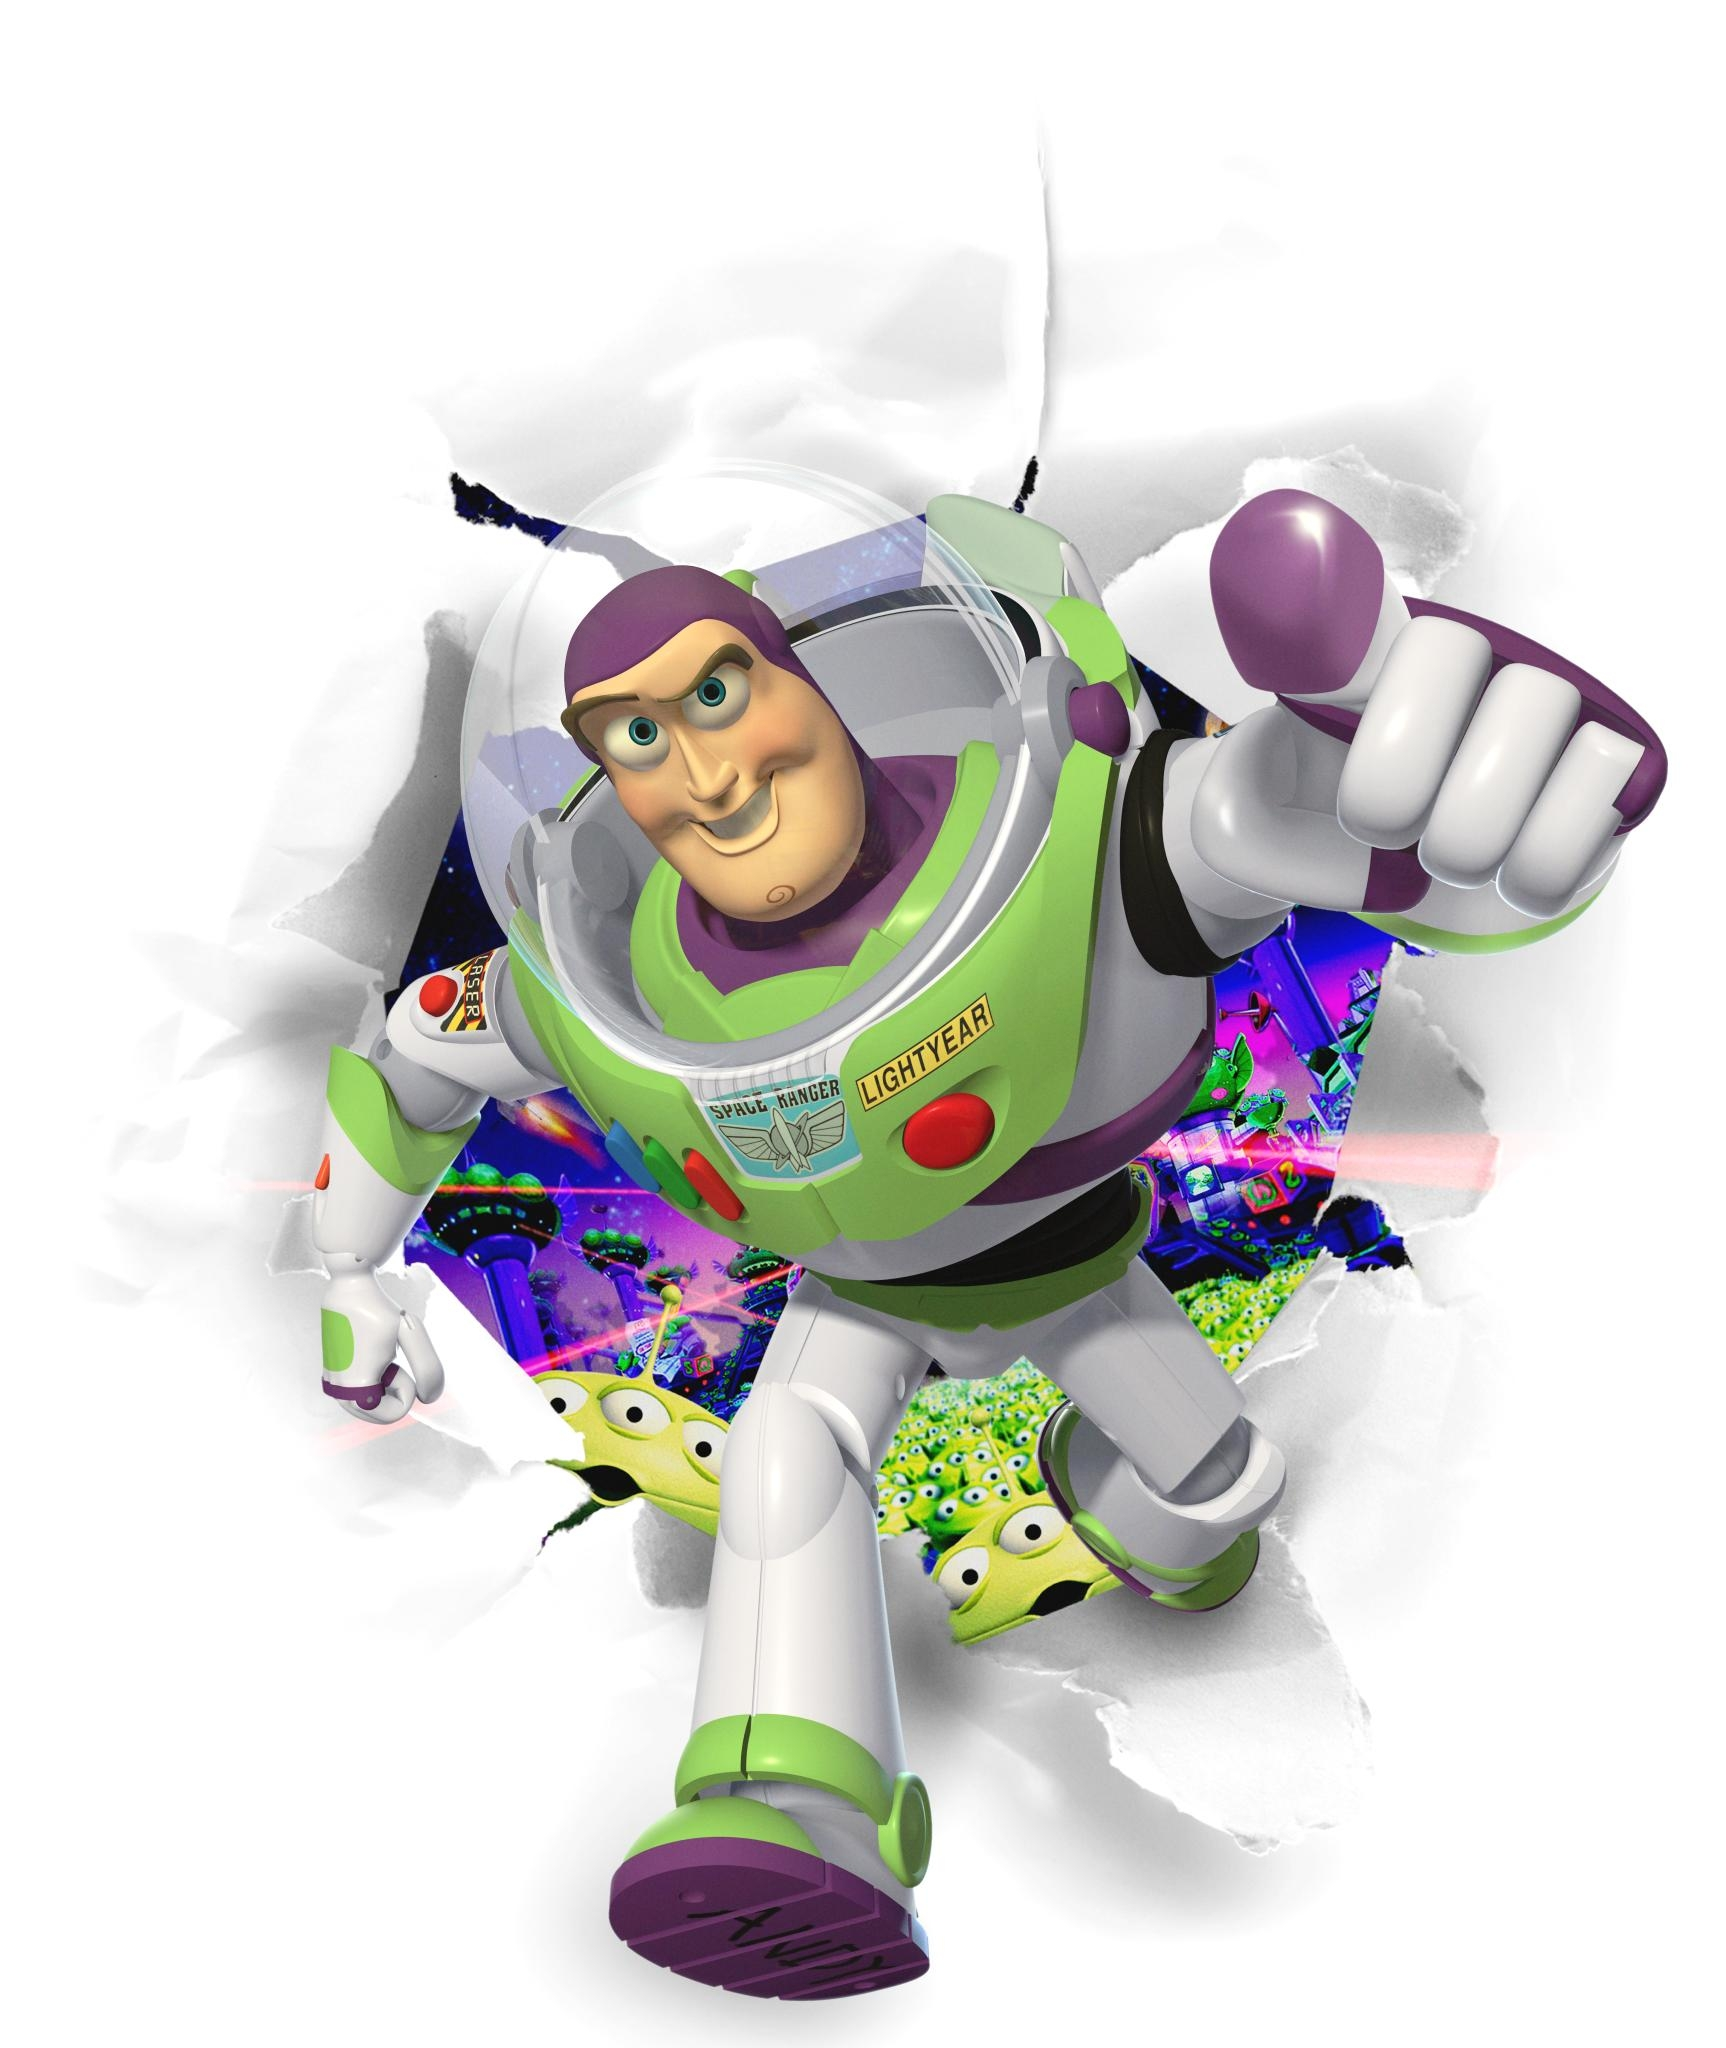 With Buzz Lightyear At Command, Disney Is Prepping A New Game For iOS